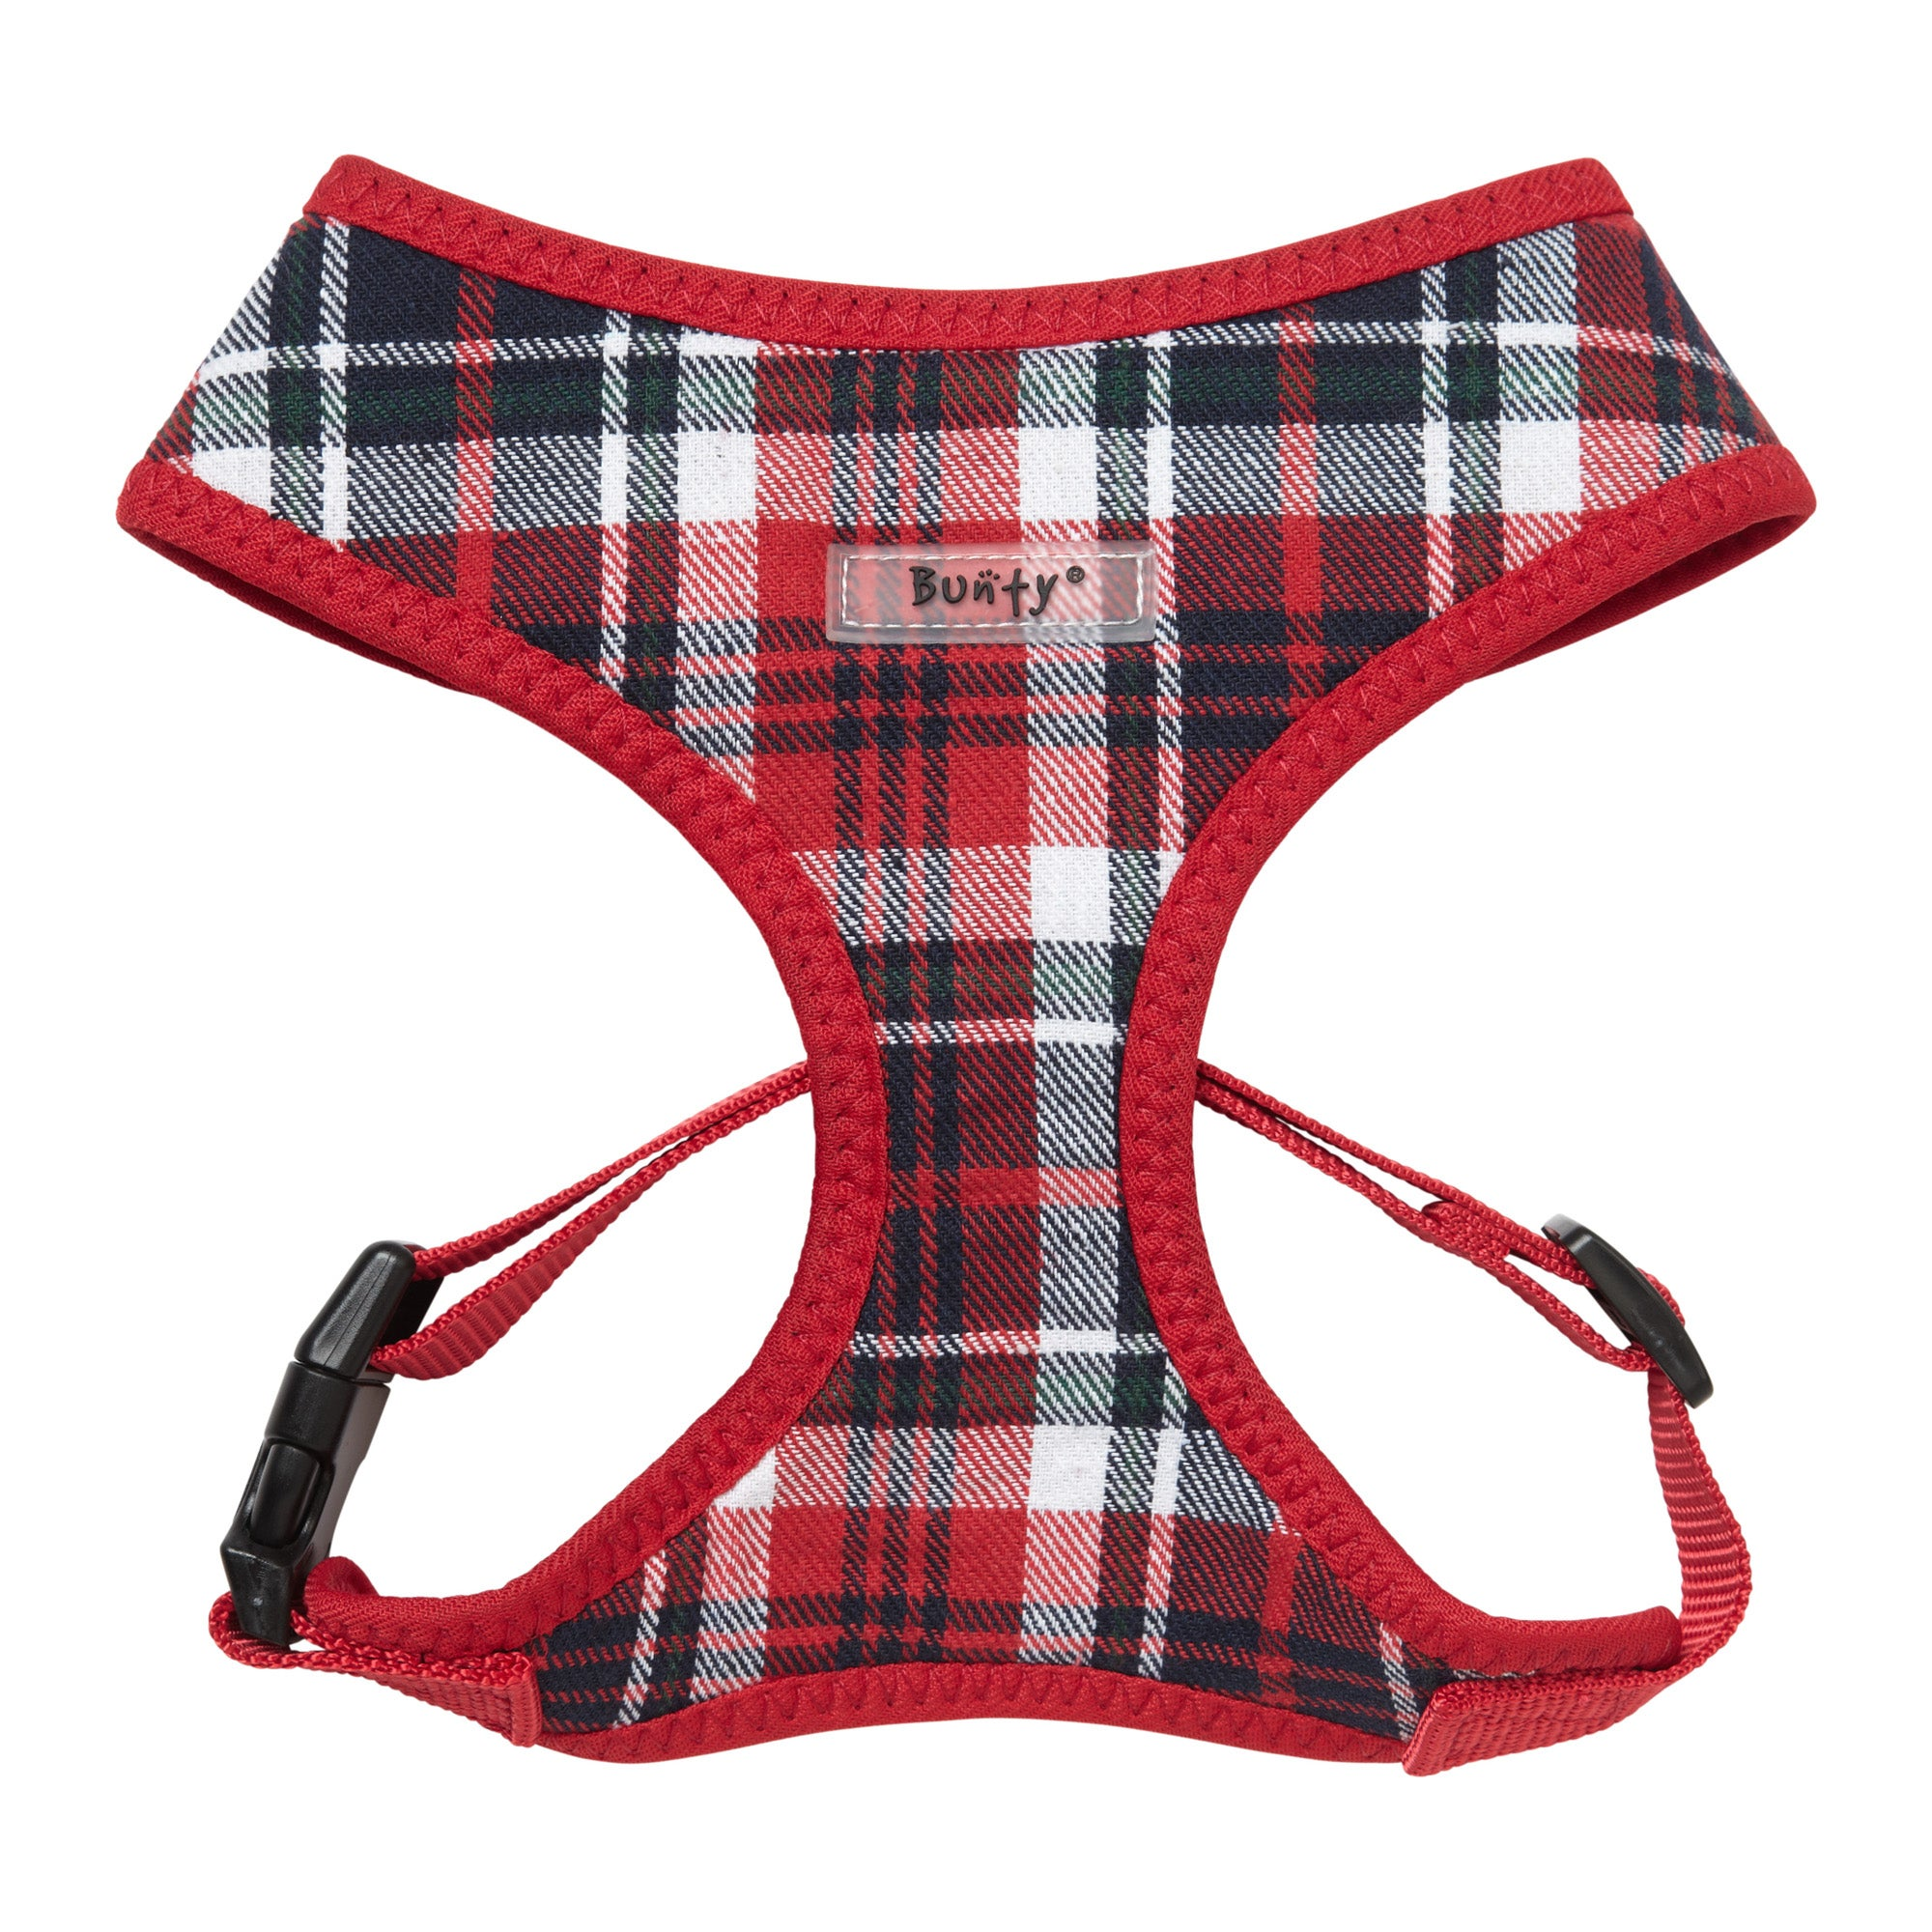 Bunty Tartan Mesh Dog Harness Red, White and Green